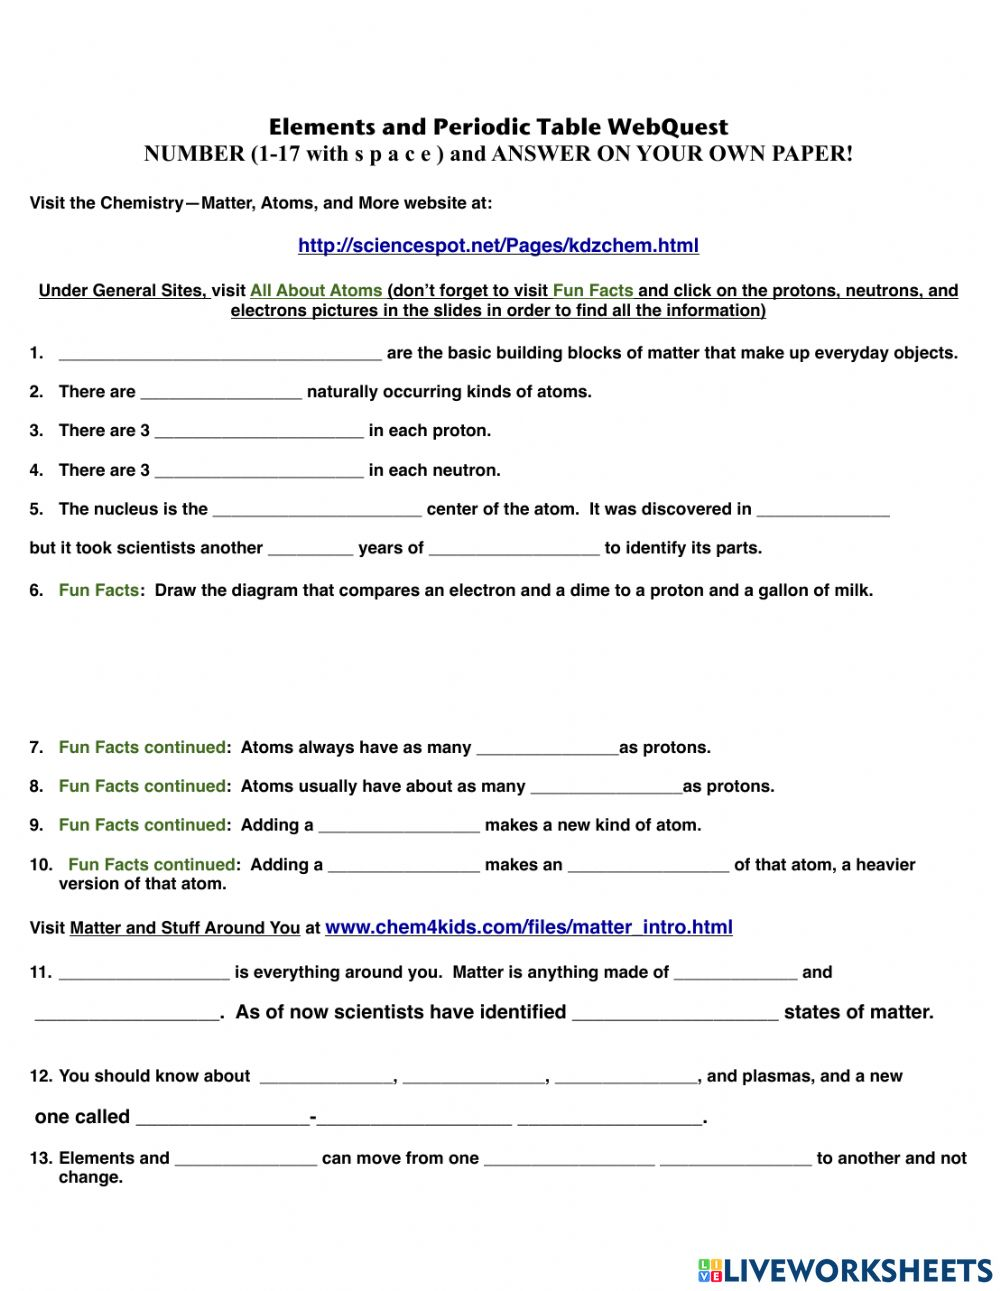 Elements and Periodic Table WebQuest worksheet With Periodic Table Webquest Worksheet Answers